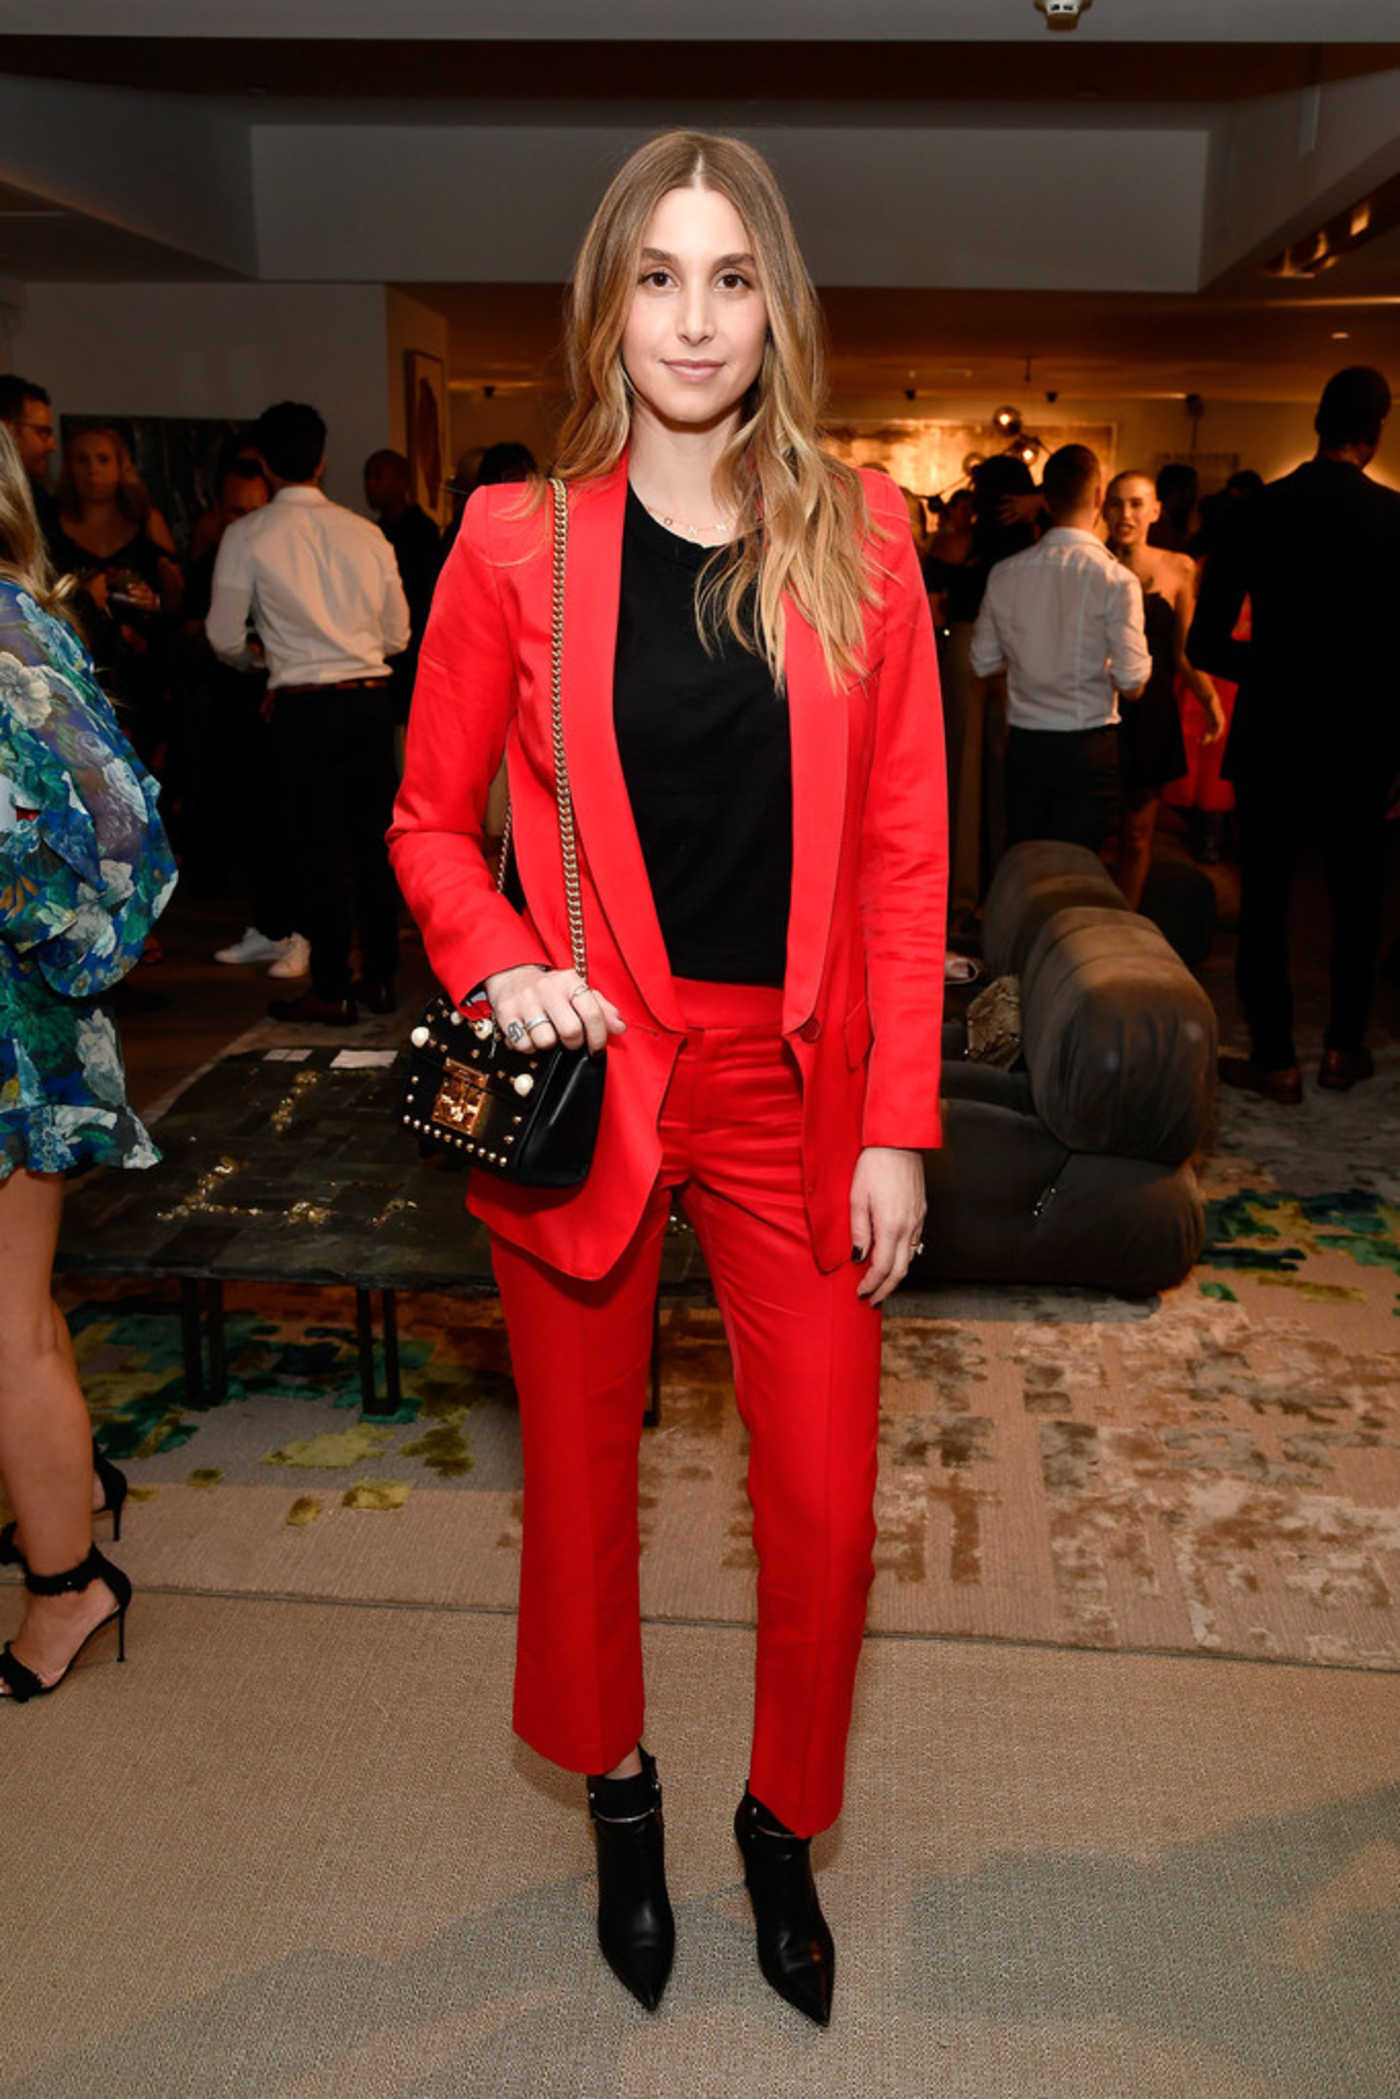 Whitney Port at the Fashion Awards 2017 Nominees Cocktail Reception in LA 10/25/2017